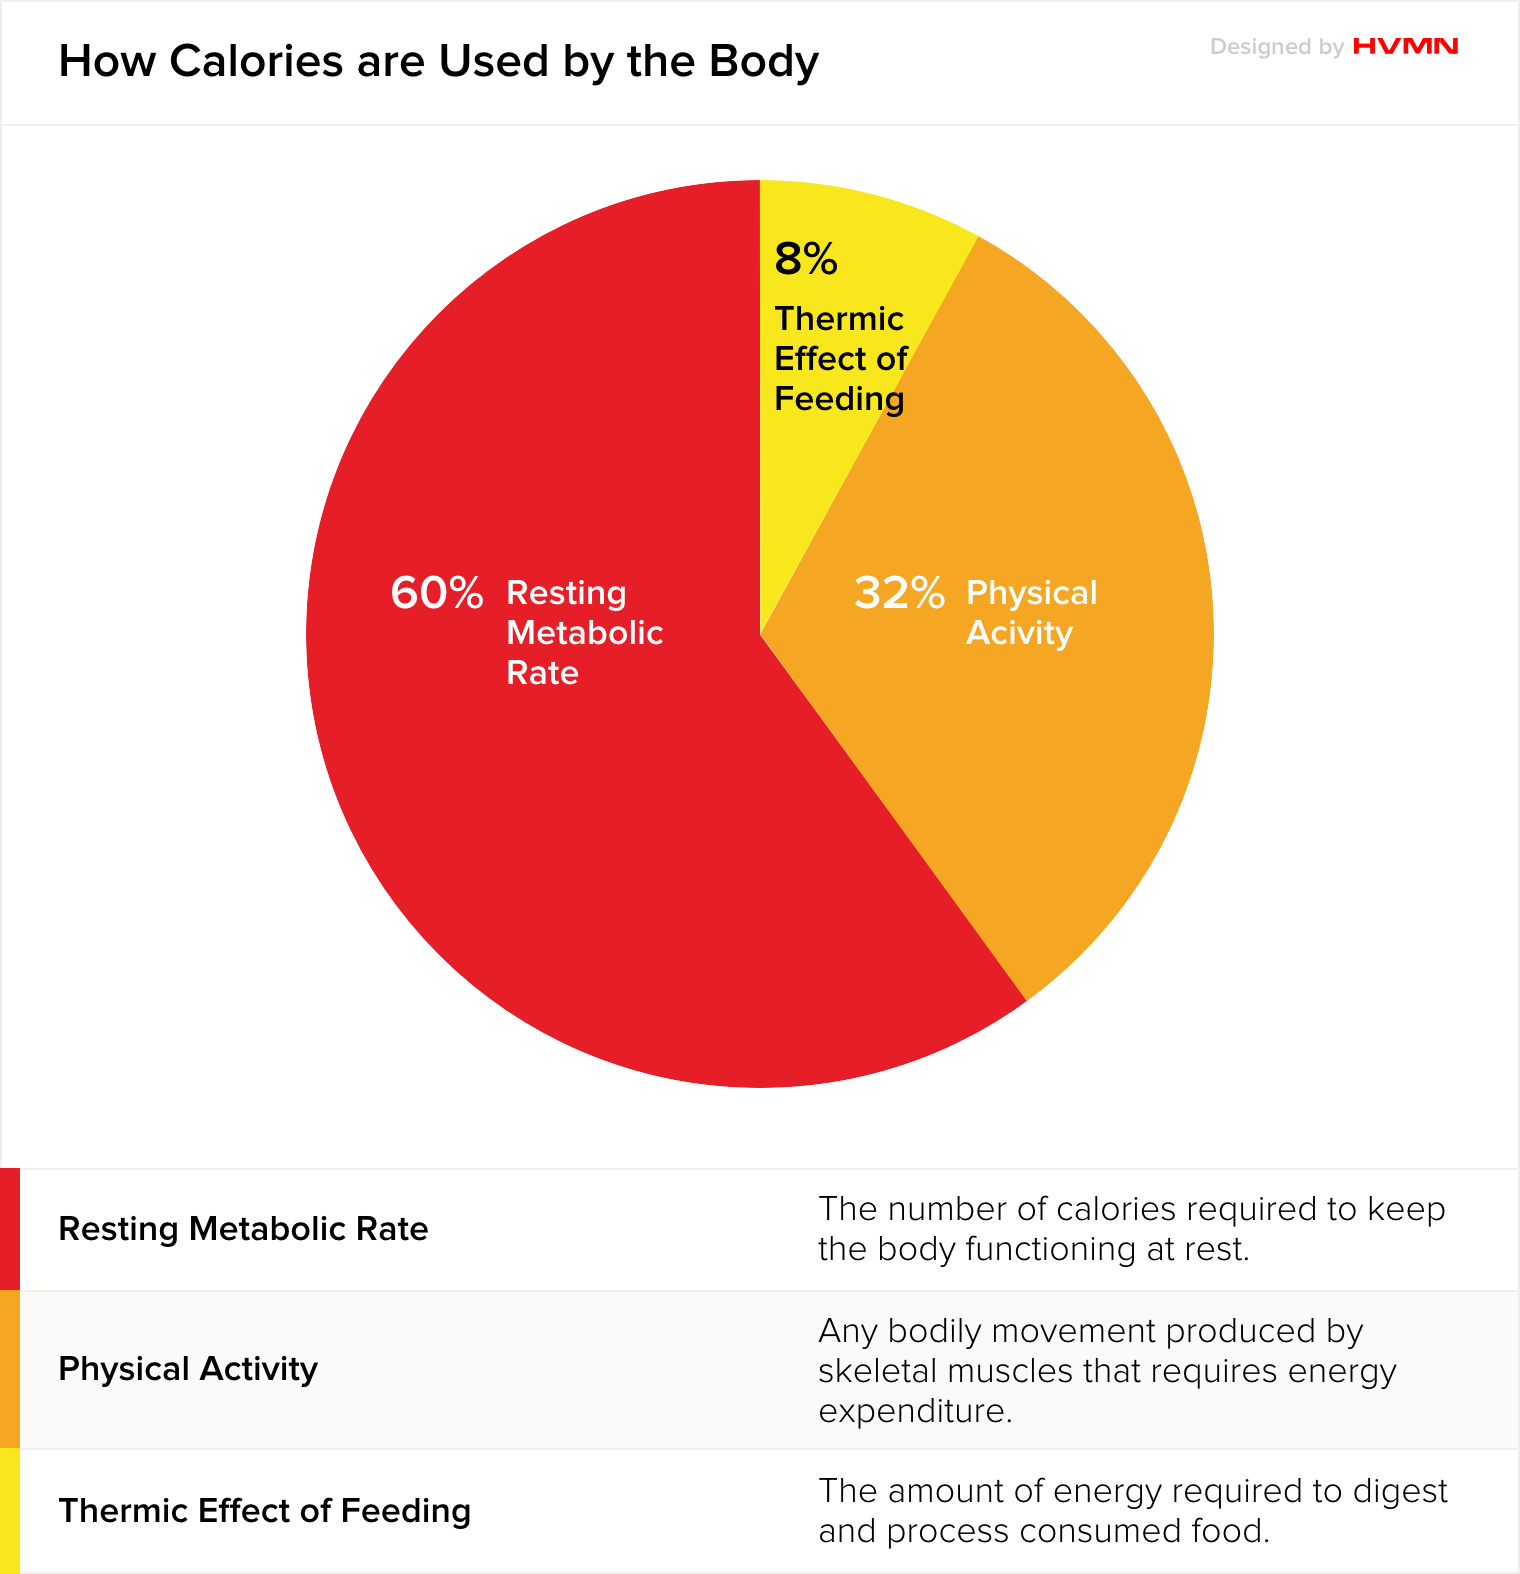 A pie chart showing how the body uses calories